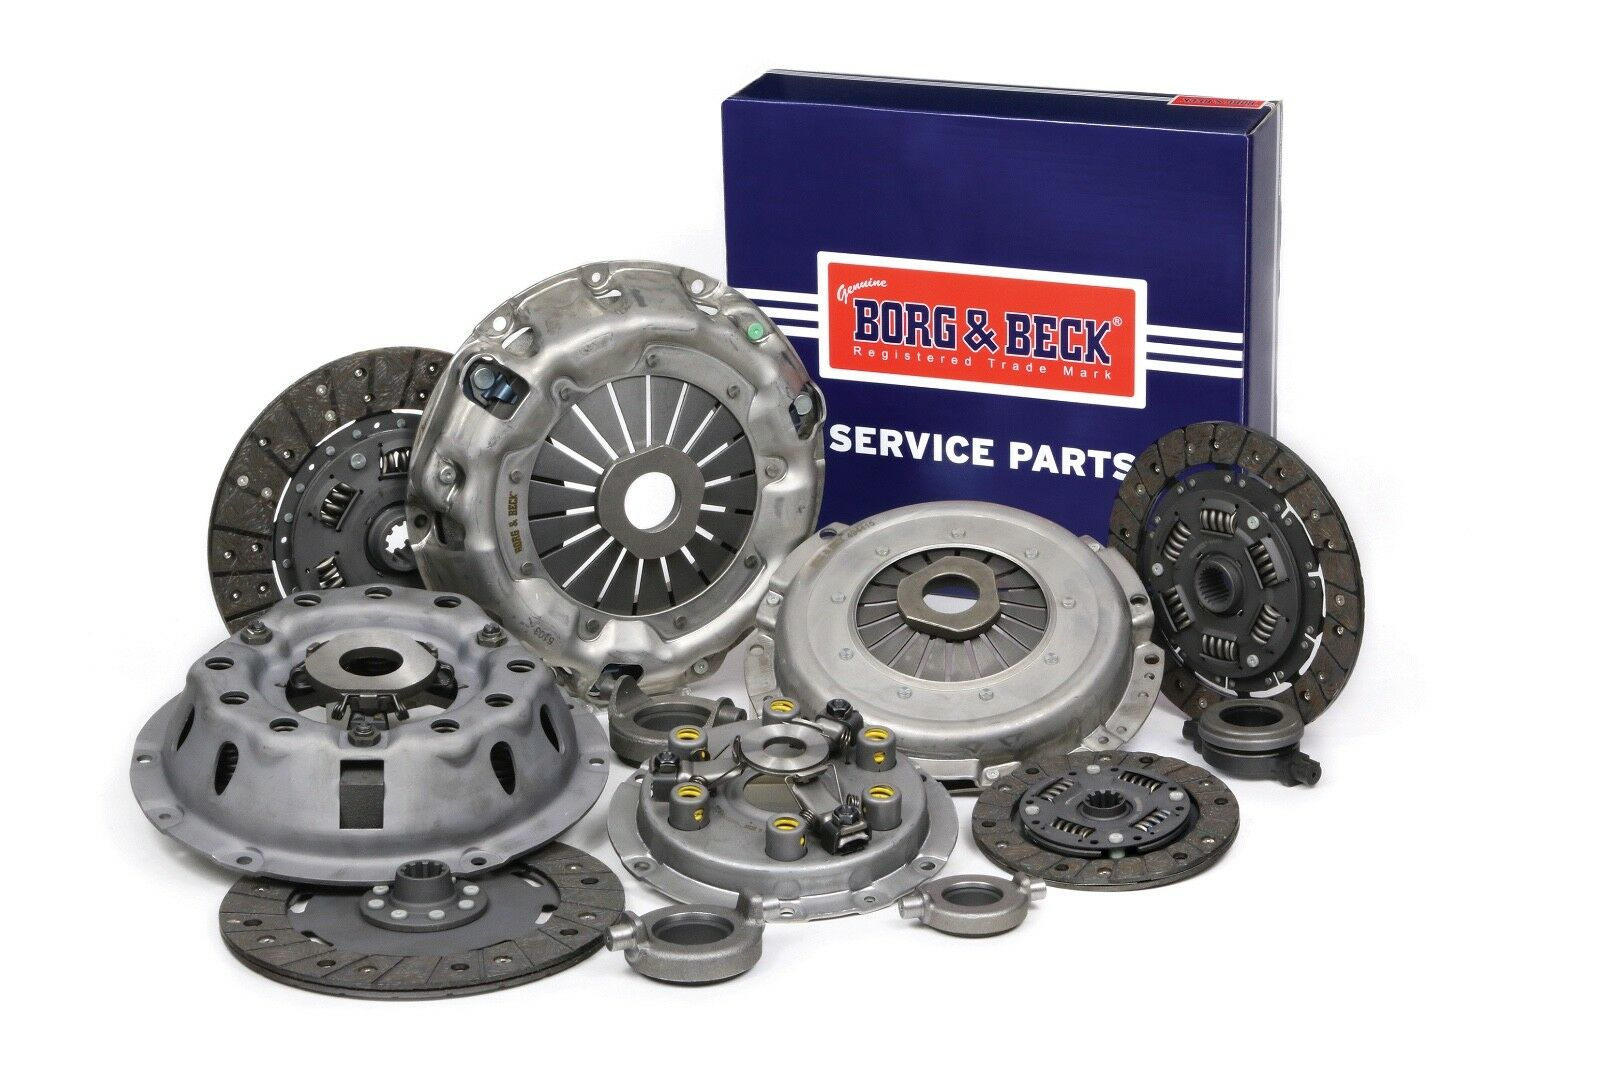 MGB Clutch Kit - 3 Piece - Borg and Beck HK9694 - Fits All Years of MGB